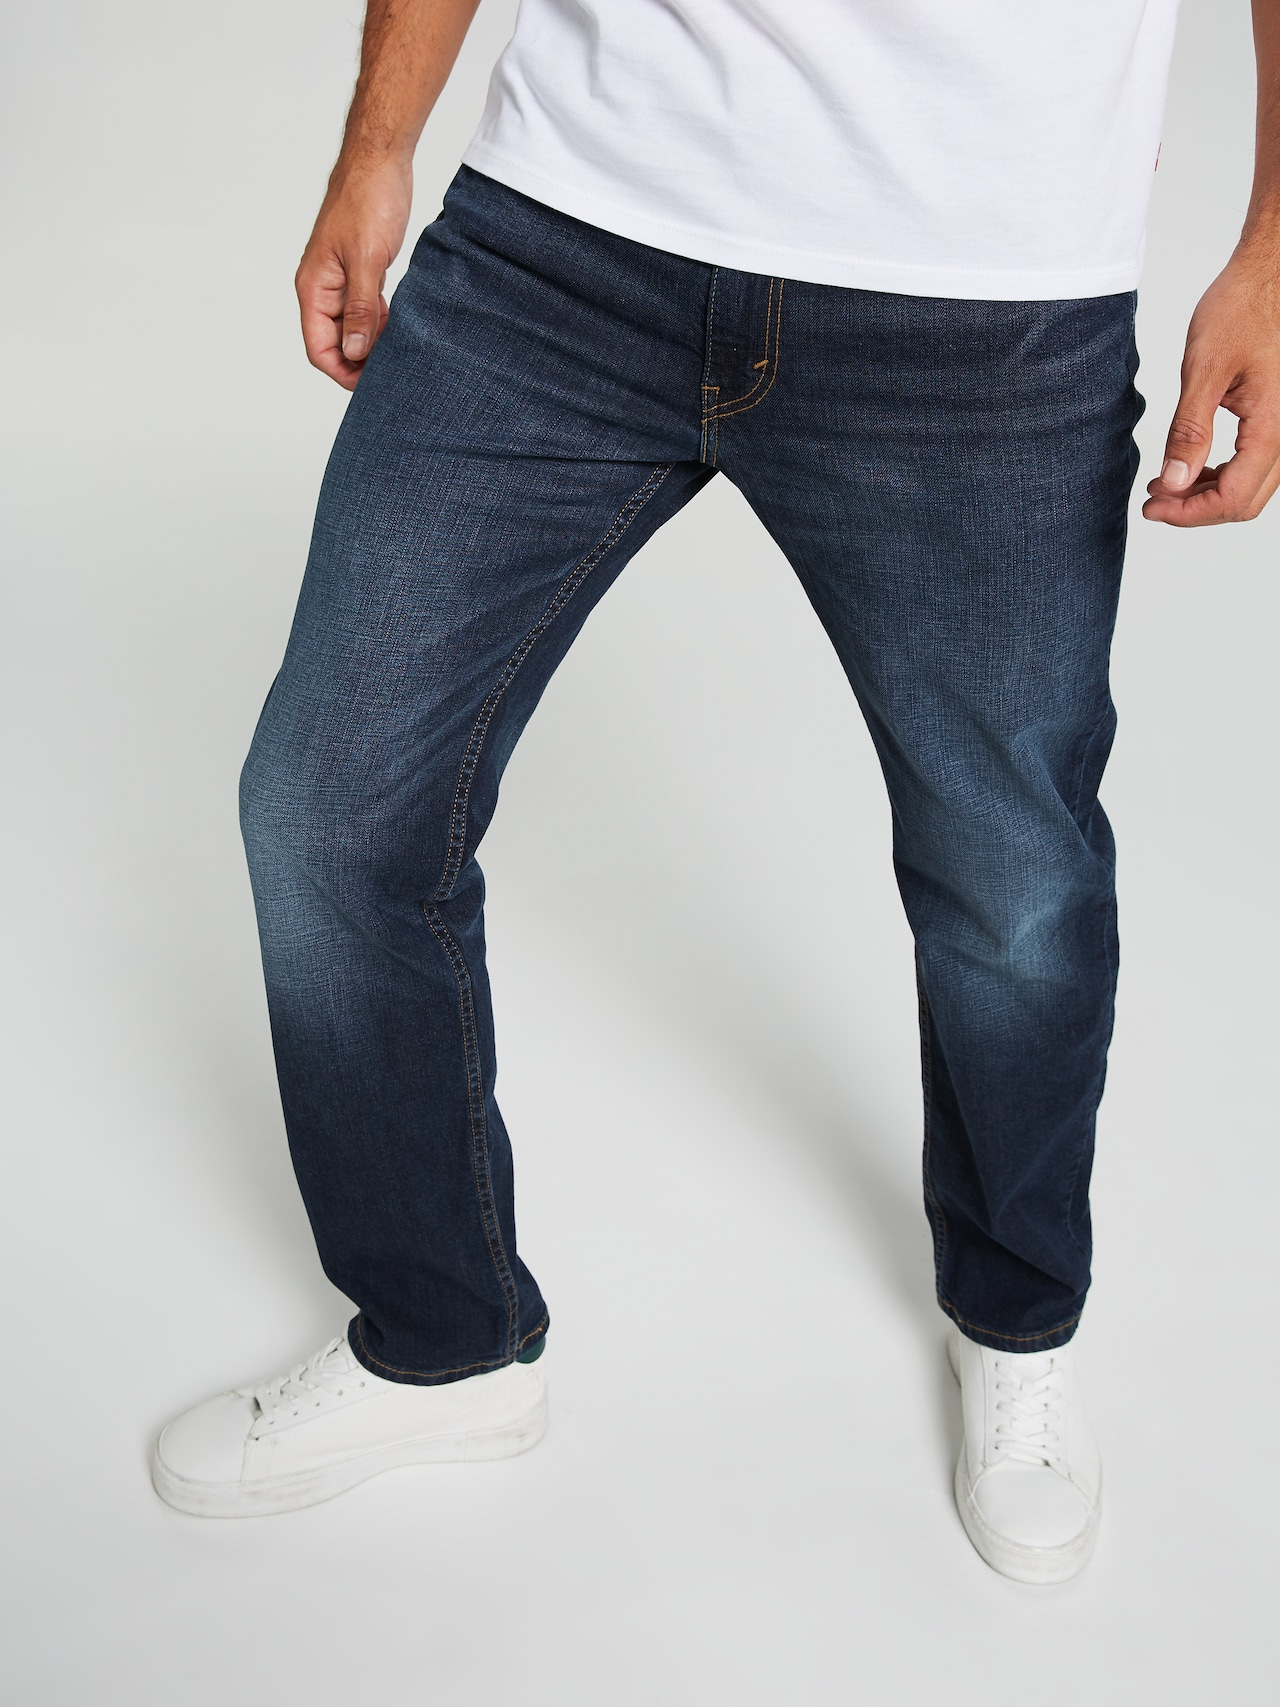 fff5455ae25 Levis 514 Straight - Just Jeans Online